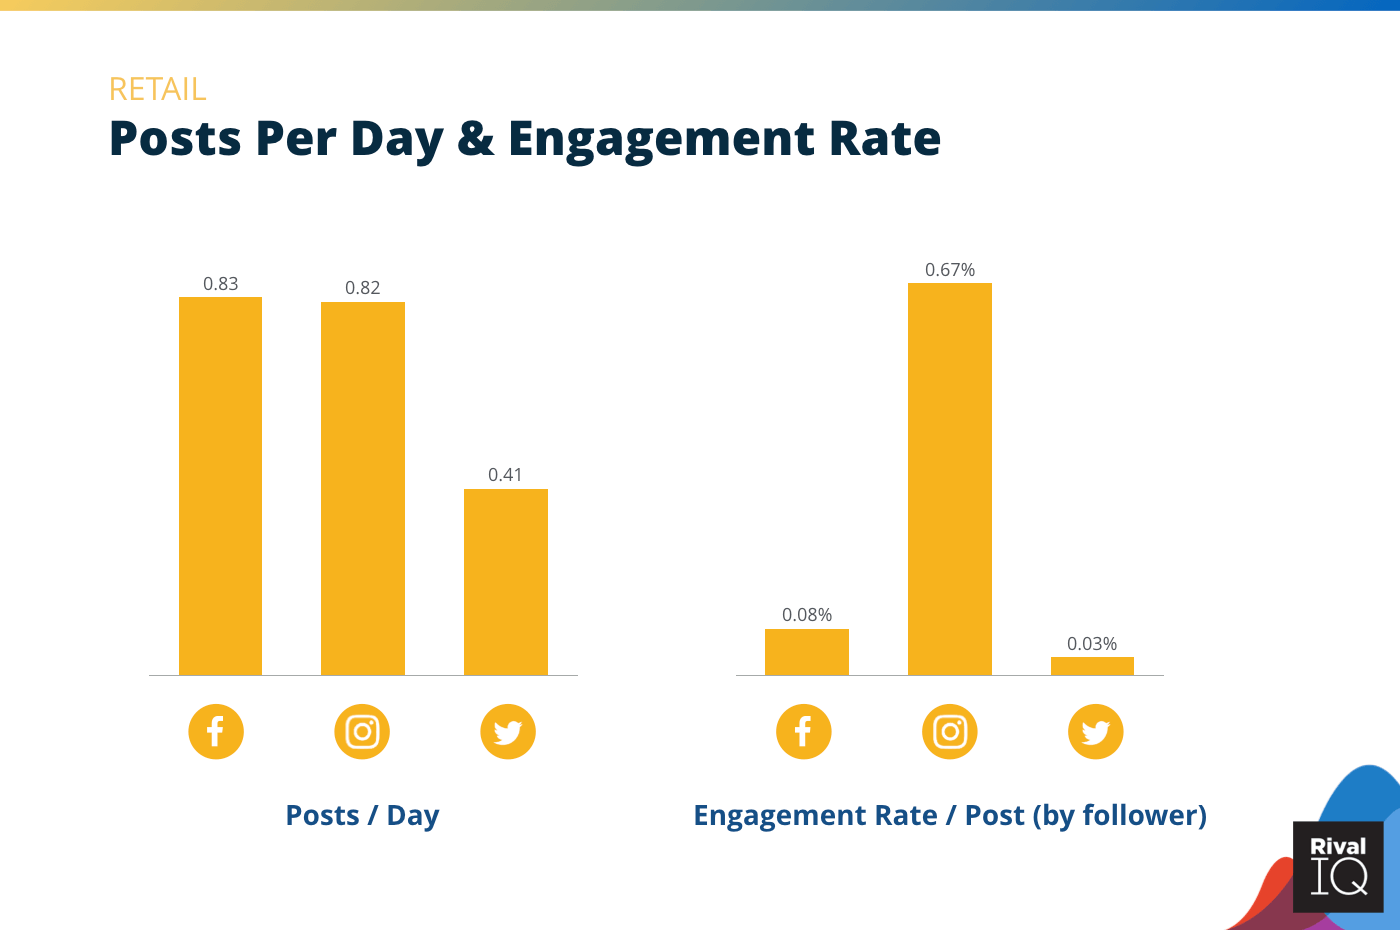 Chart of Posts per day and engagement rate per post across all channels, Retail